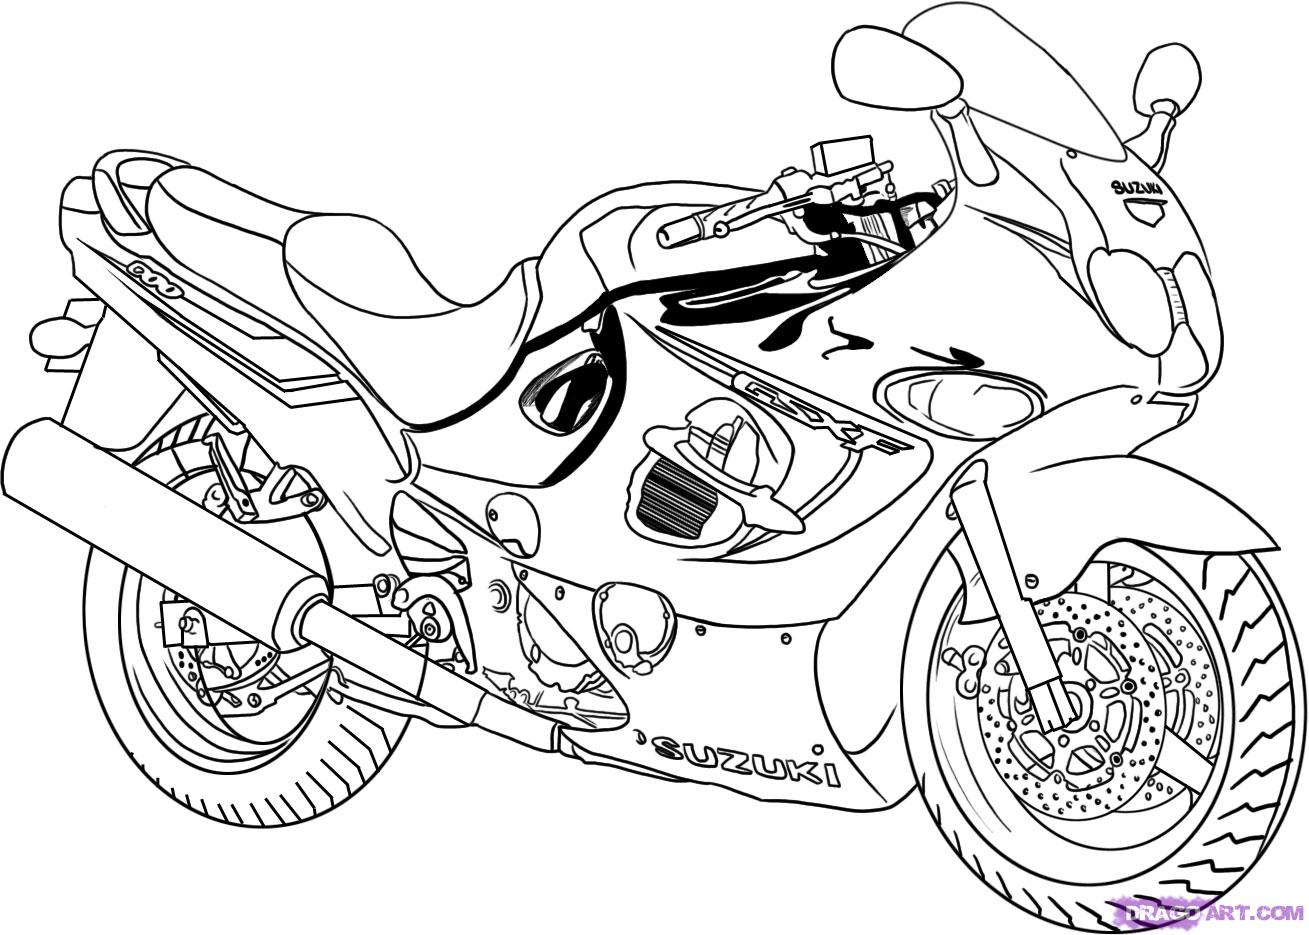 1309x935 Tattoo Coloring Pages How To Draw A Sport Bike, 2006 Suzuki